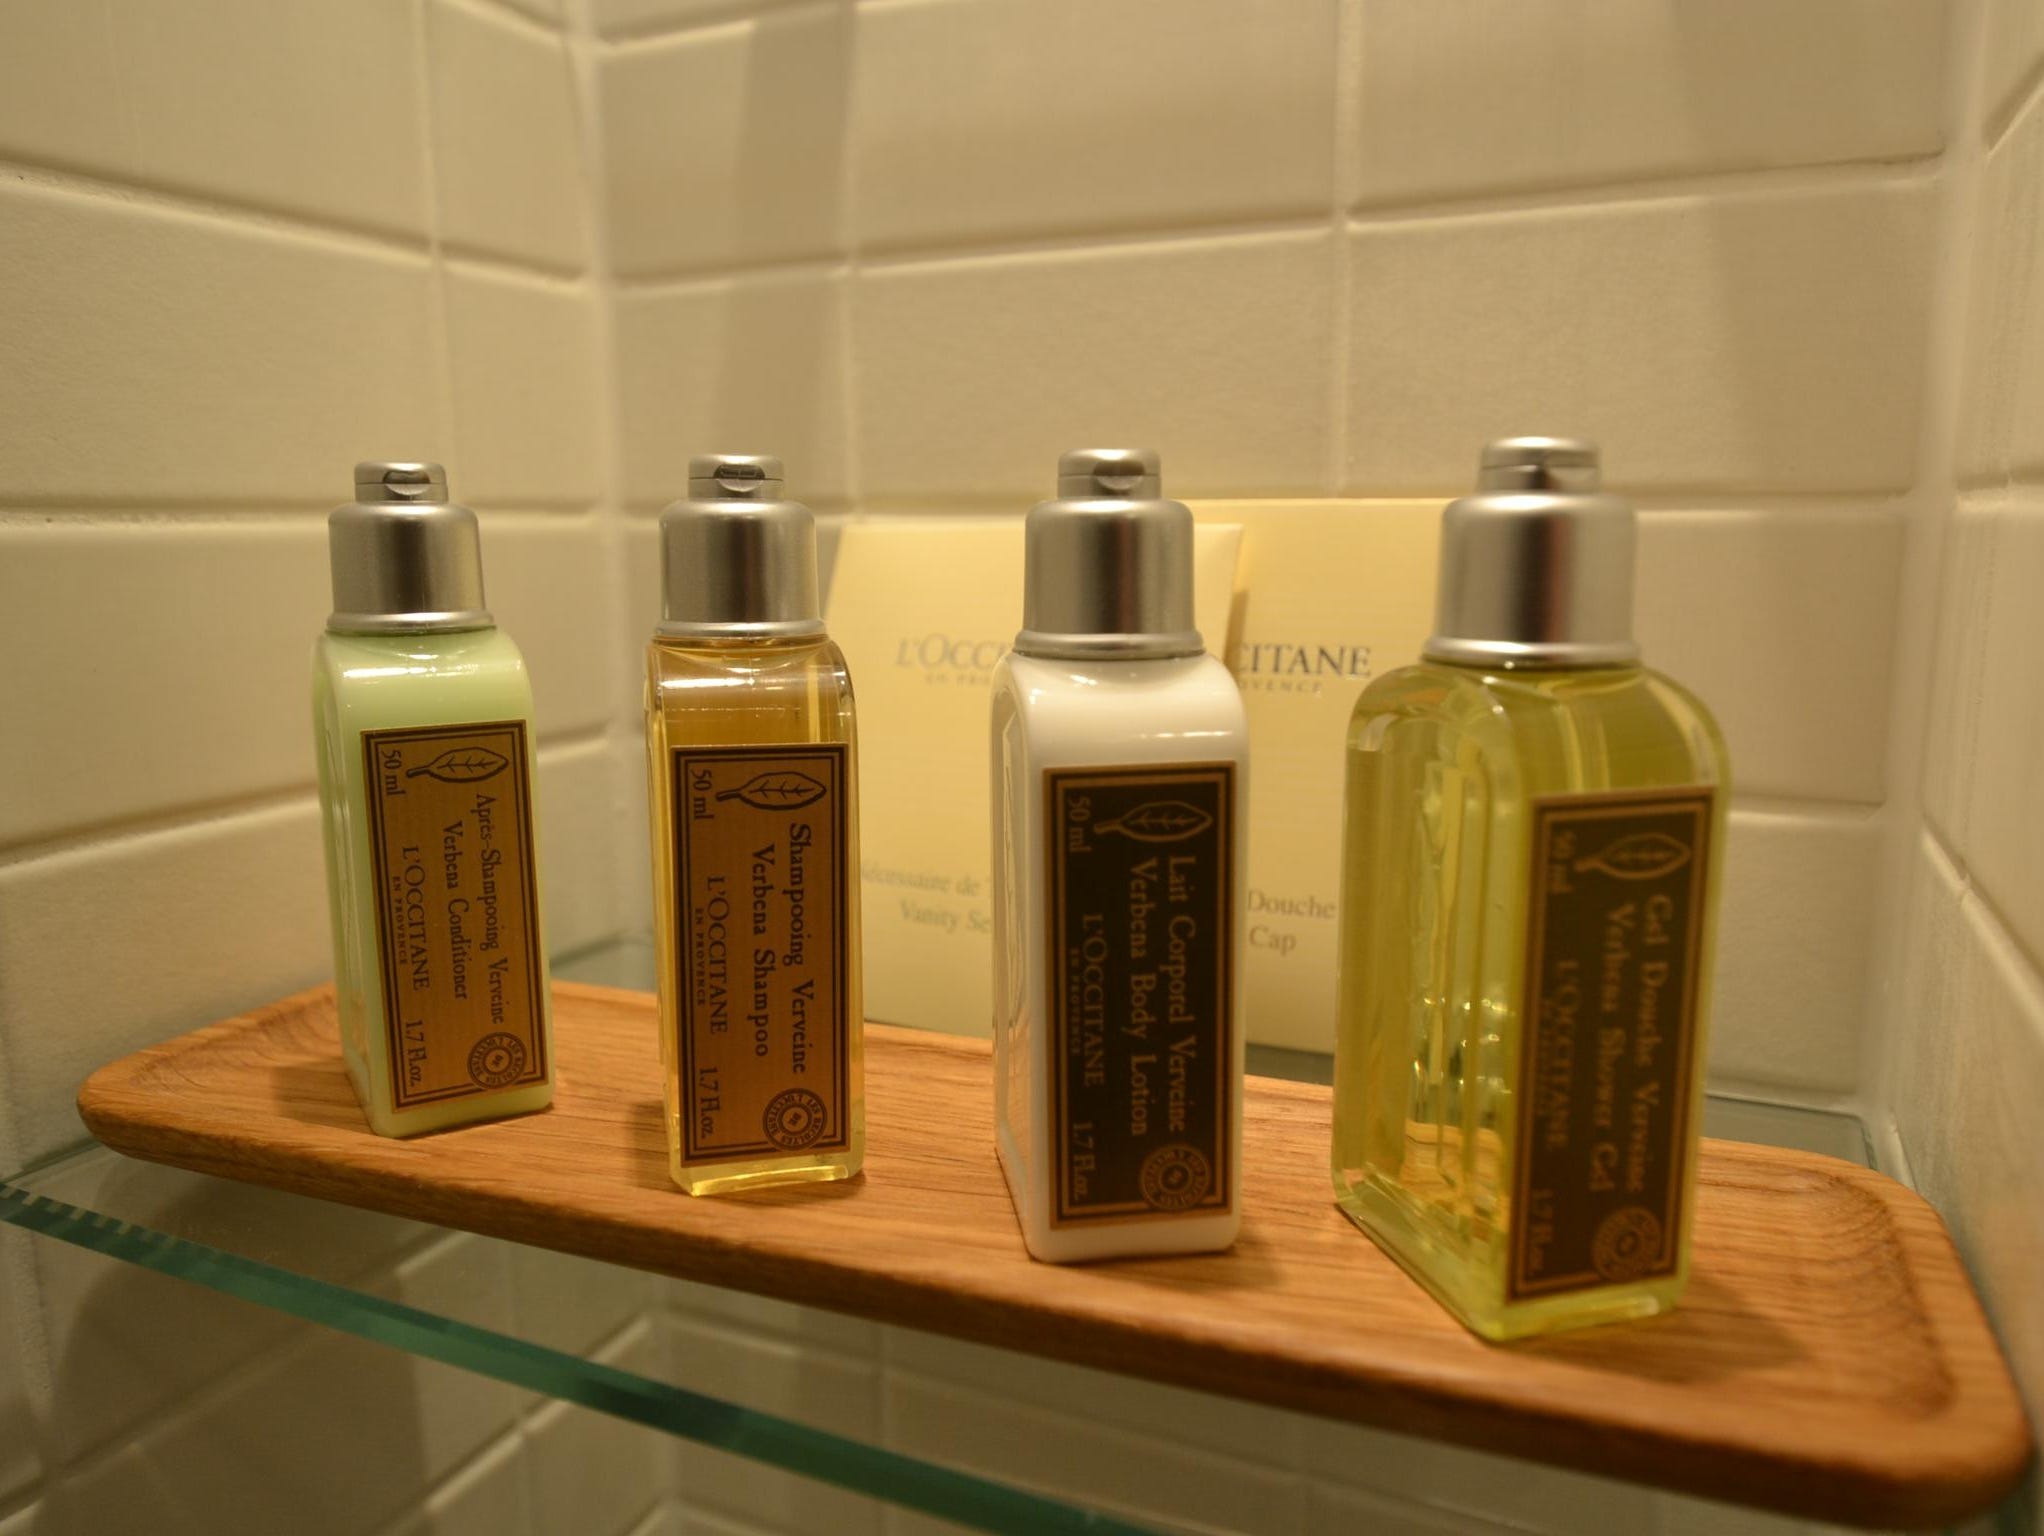 Standard in all bathrooms on the Viking Odin are L'Occitane shampoo, shower gel and other bath products.